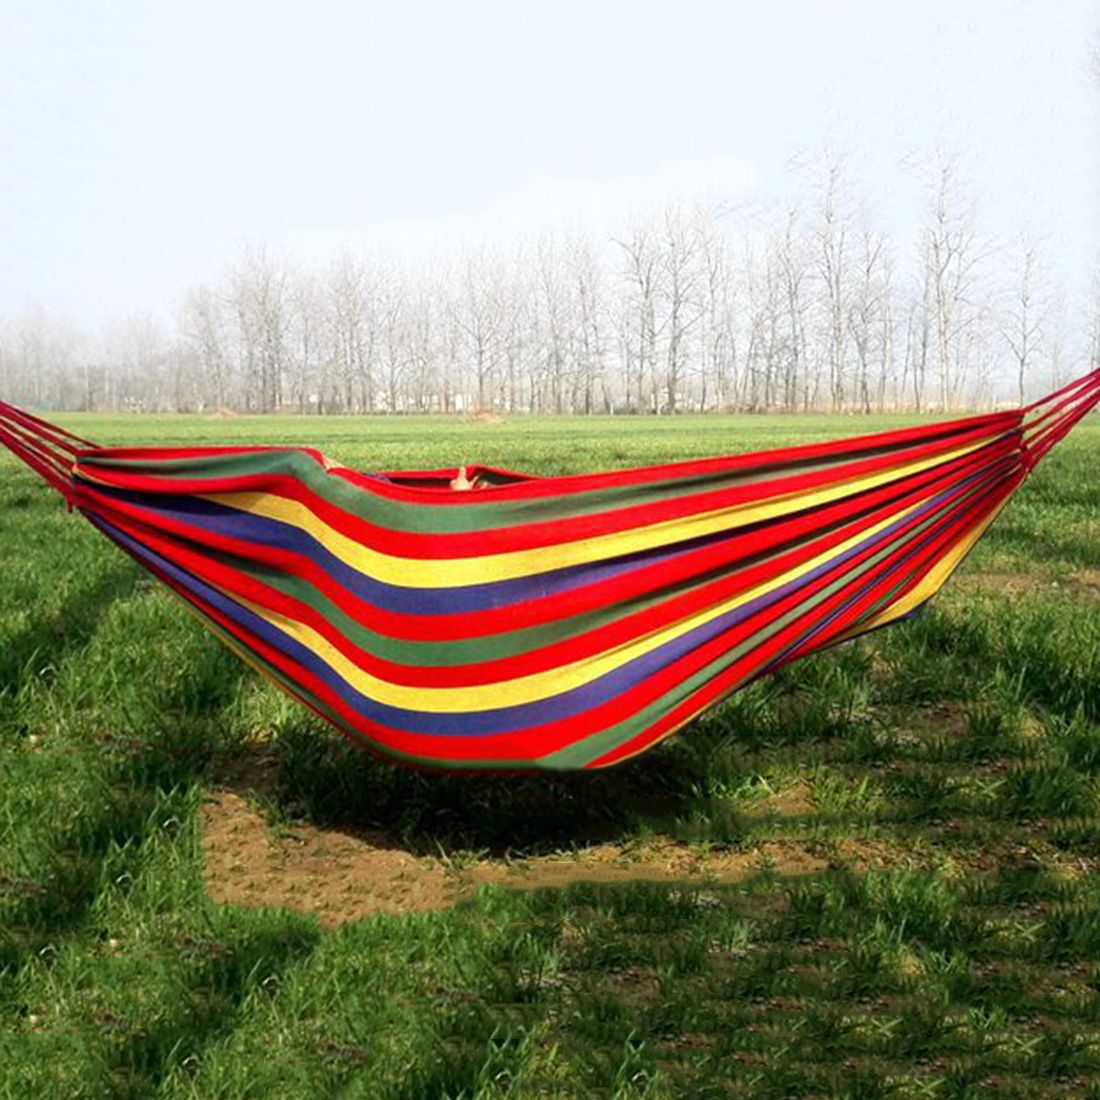 Outdoors Portable Camping Parachute Sleeping Double Hammock Garden Swing Hammock Hanging Bed Travel Camping Swing Canvas Stripe Sleeping Bags Sports & Entertainment